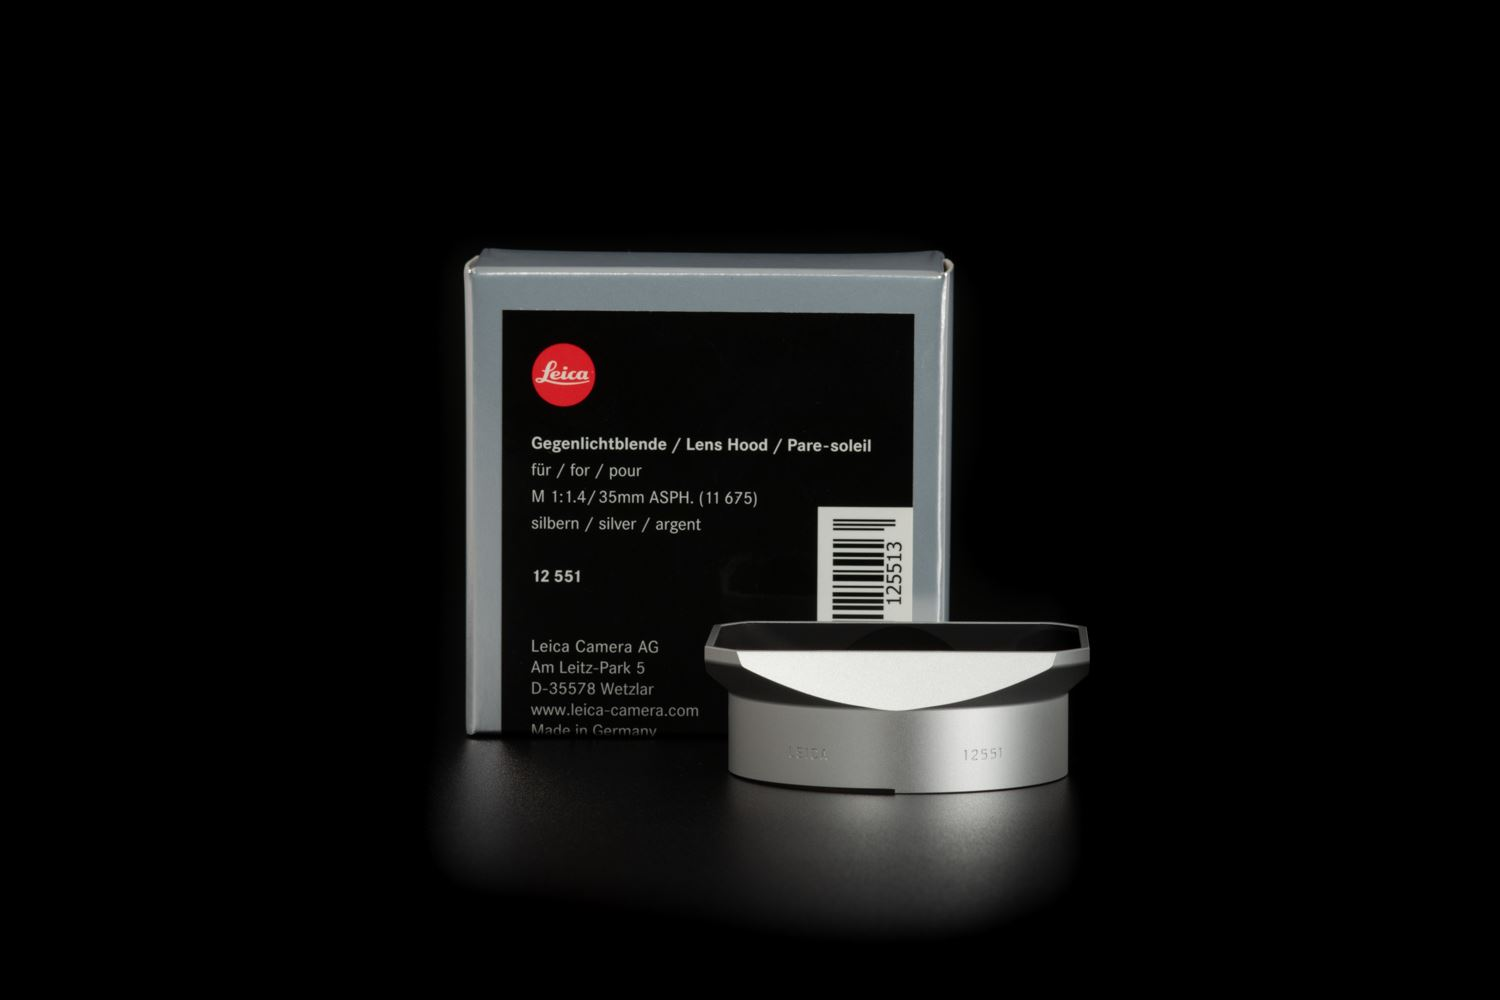 Picture of Lens Hood for Summilux-M 35mm f/1.4 ASPH Silver Anodize finish